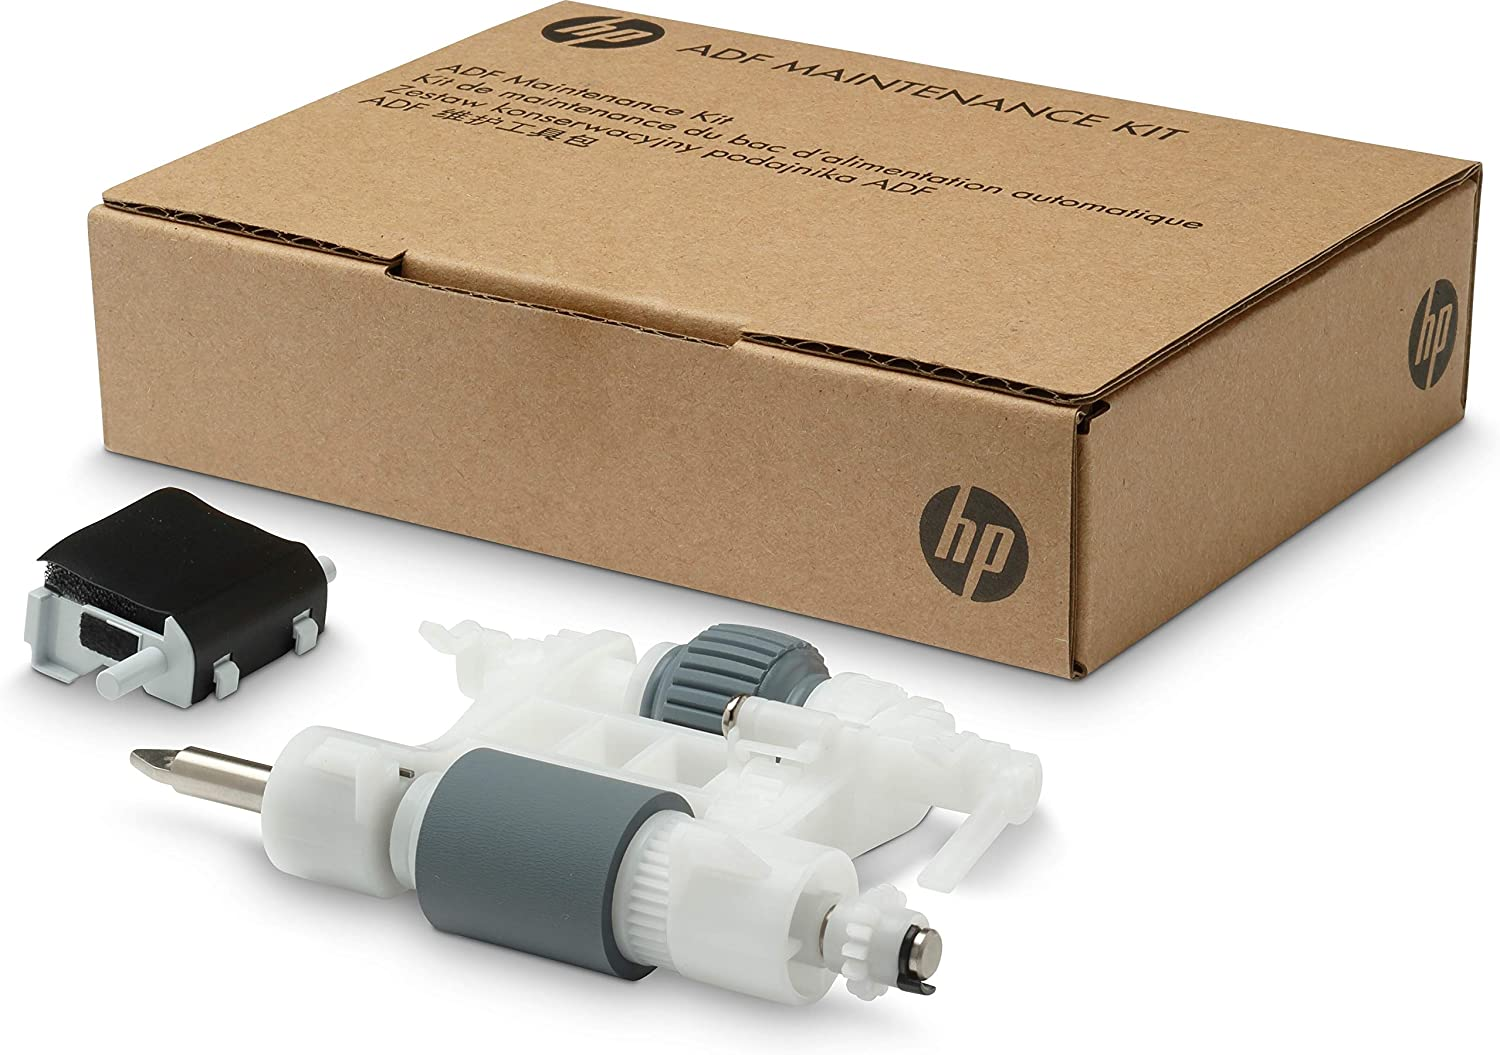 HP M5035 MFP Adf Pm Kit Adf Maintenance Kit for The Hp Laserjet M5035 MFP and Hp 817cFQBtvVLSL1500_